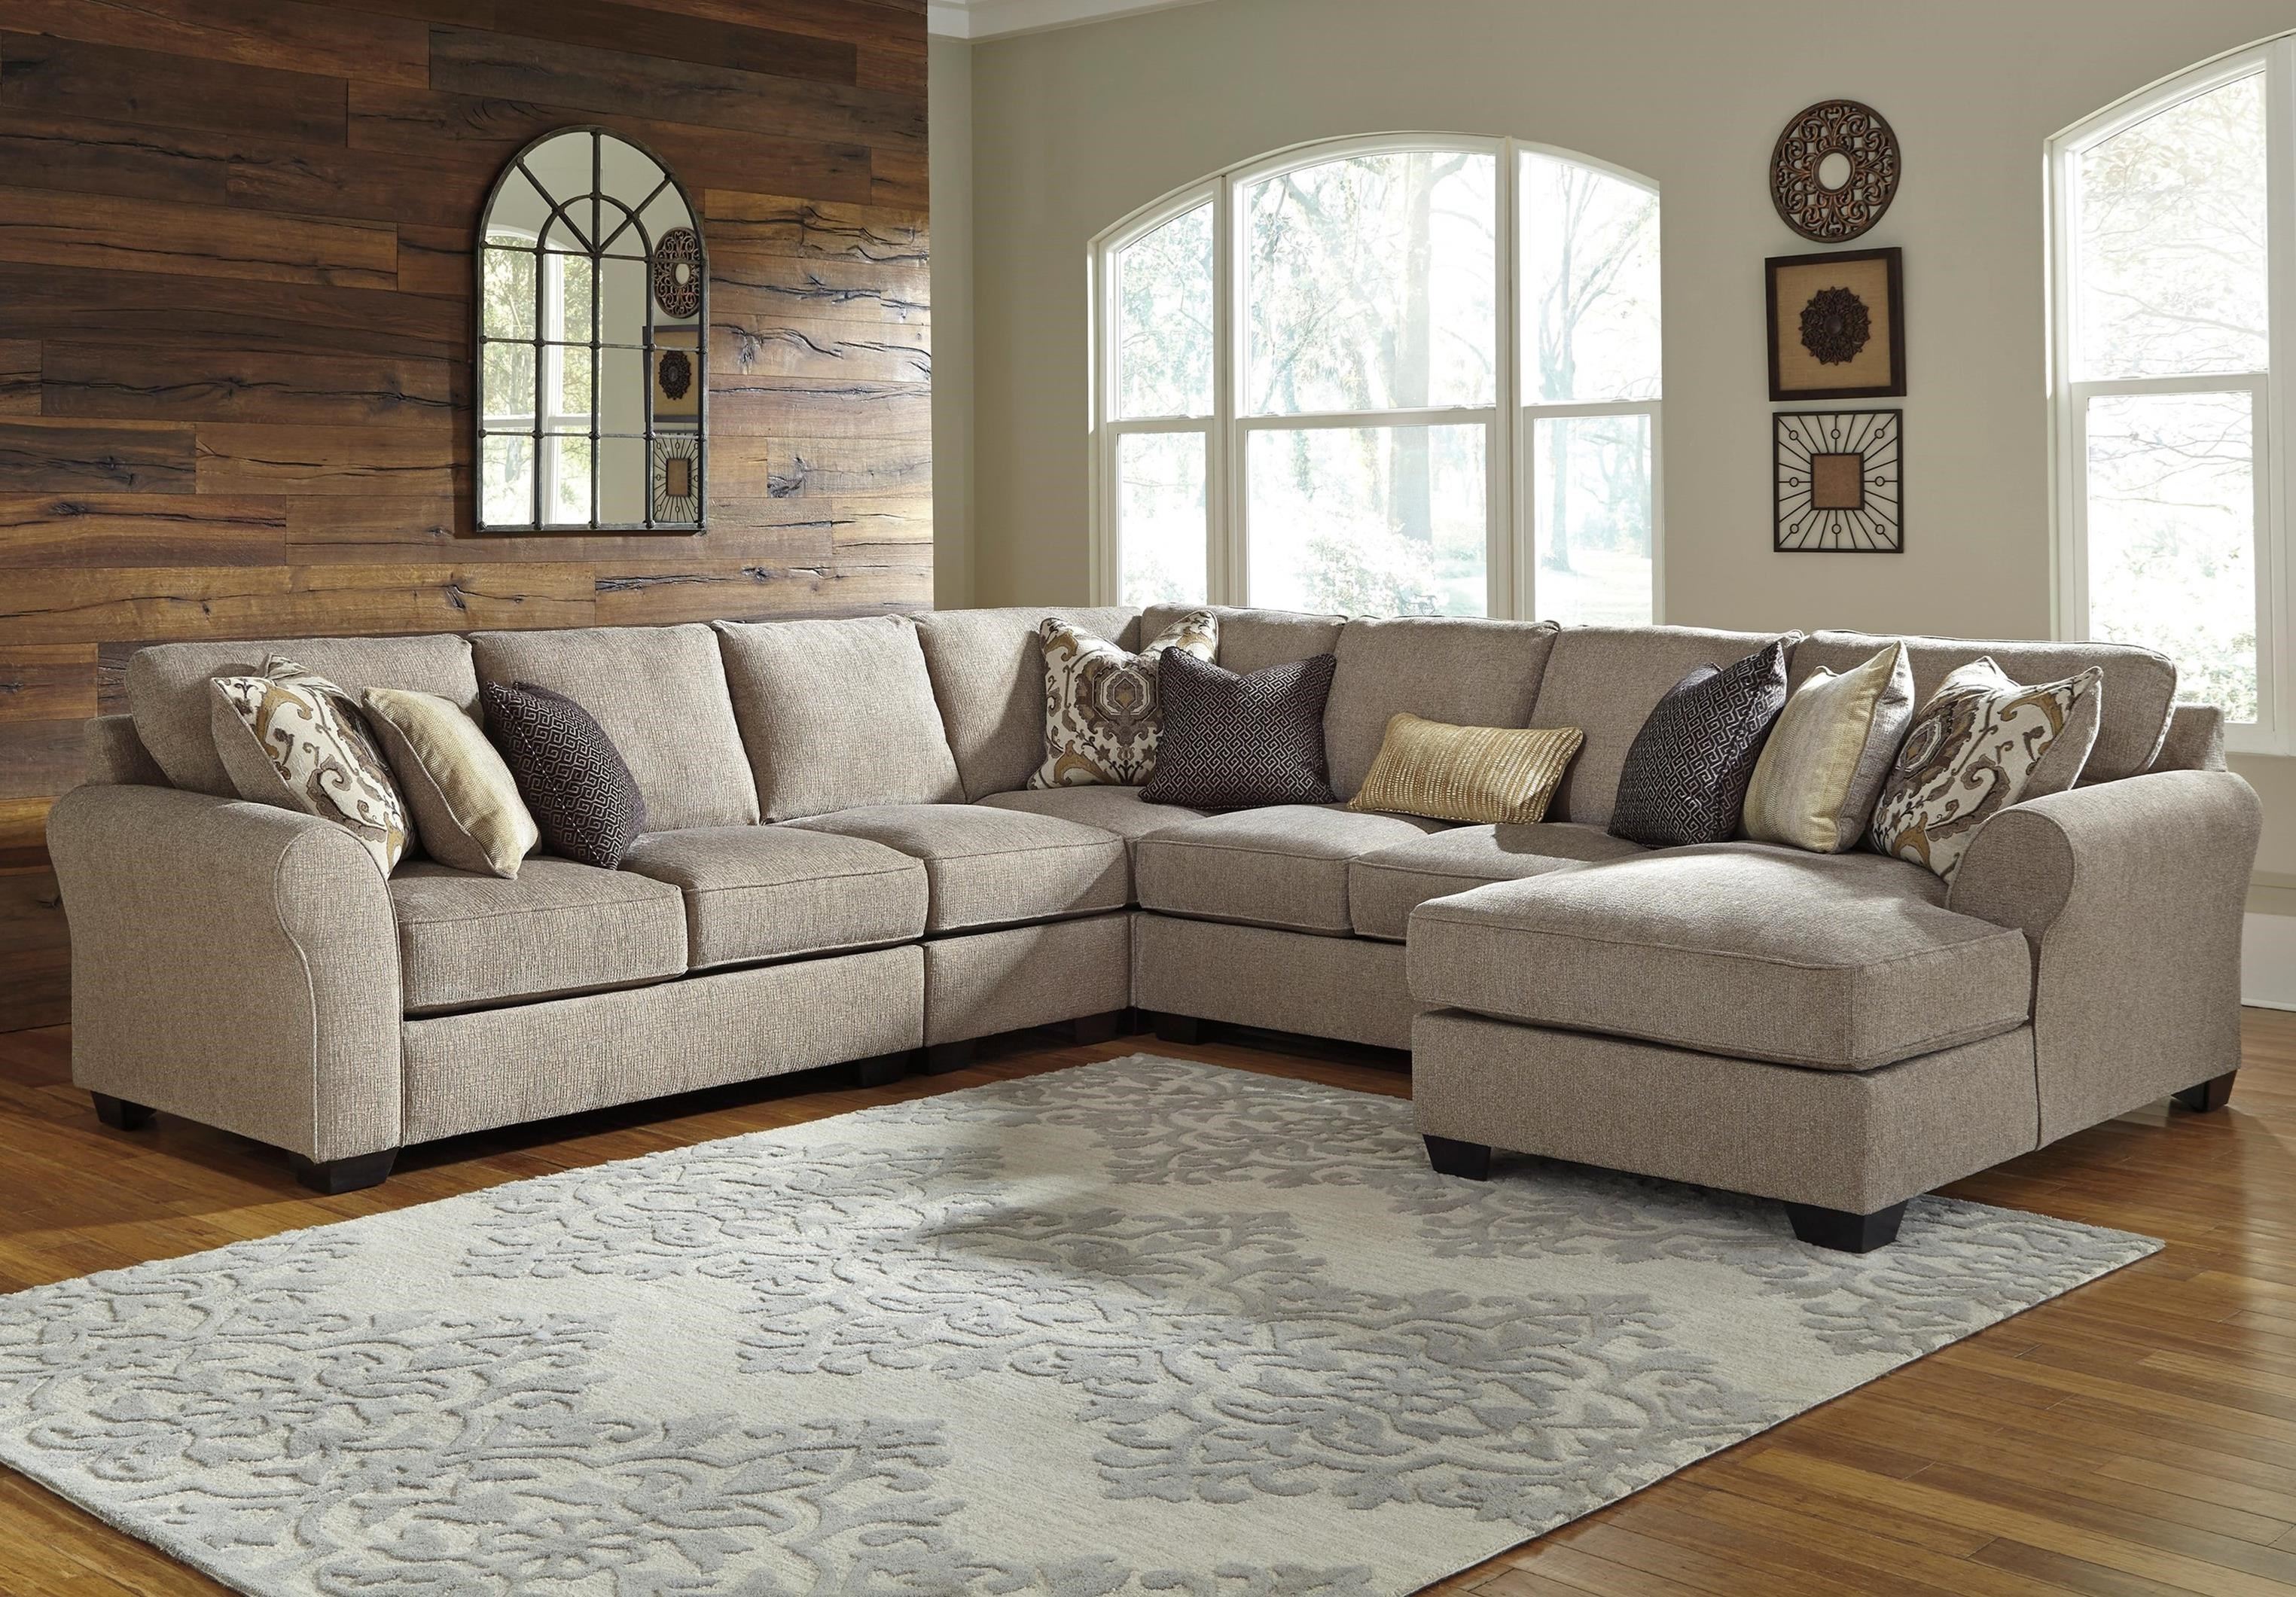 Pantomine 5-Piece Sectional with Chaise by Benchcraft at Miller Waldrop Furniture and Decor